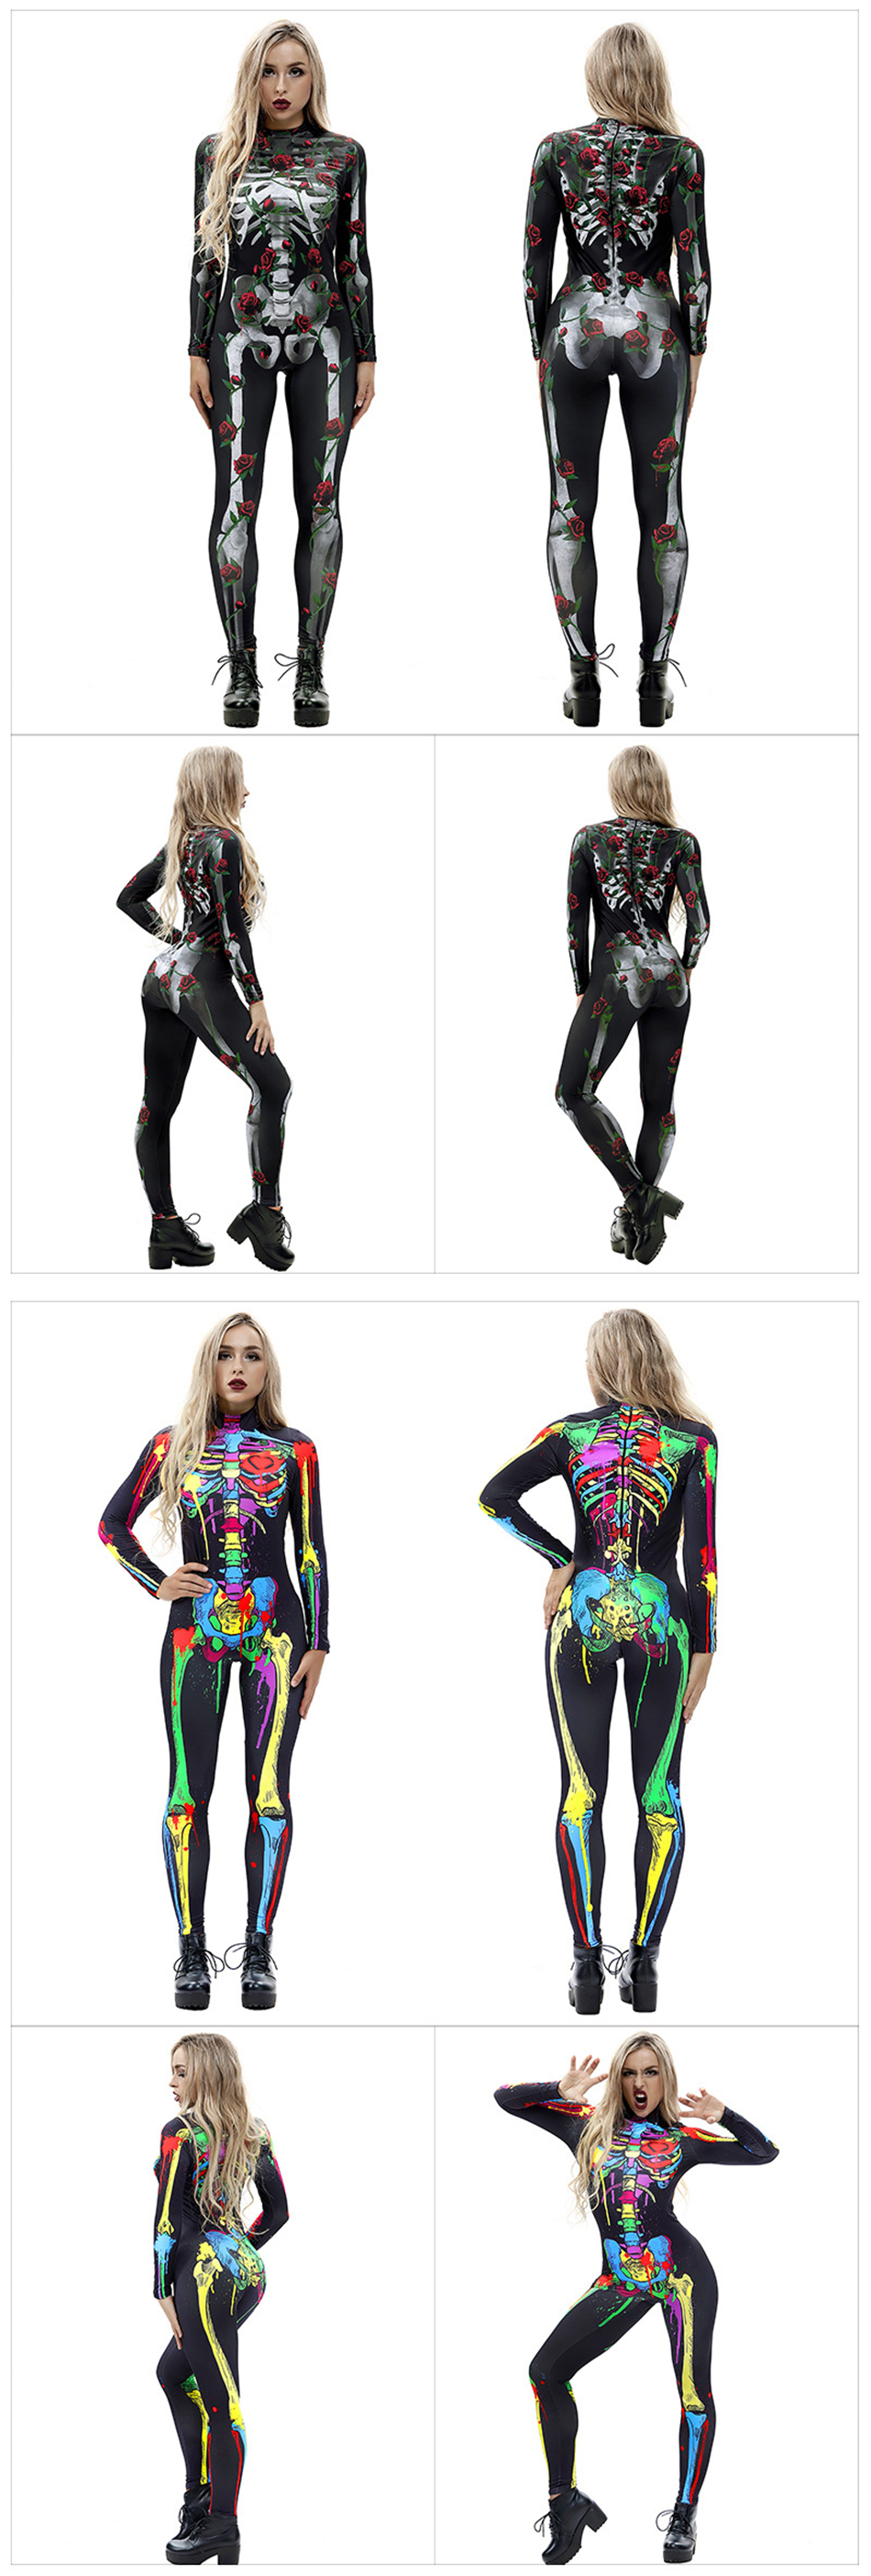 H034ccc8a061347b384bcd923ab3e08dbB - 8Style Halloween Cosplay Costumes for Women Adult Scary Skeleton Bodysuit Print Long Sleeve Carnival Party Ghost Skull Dress